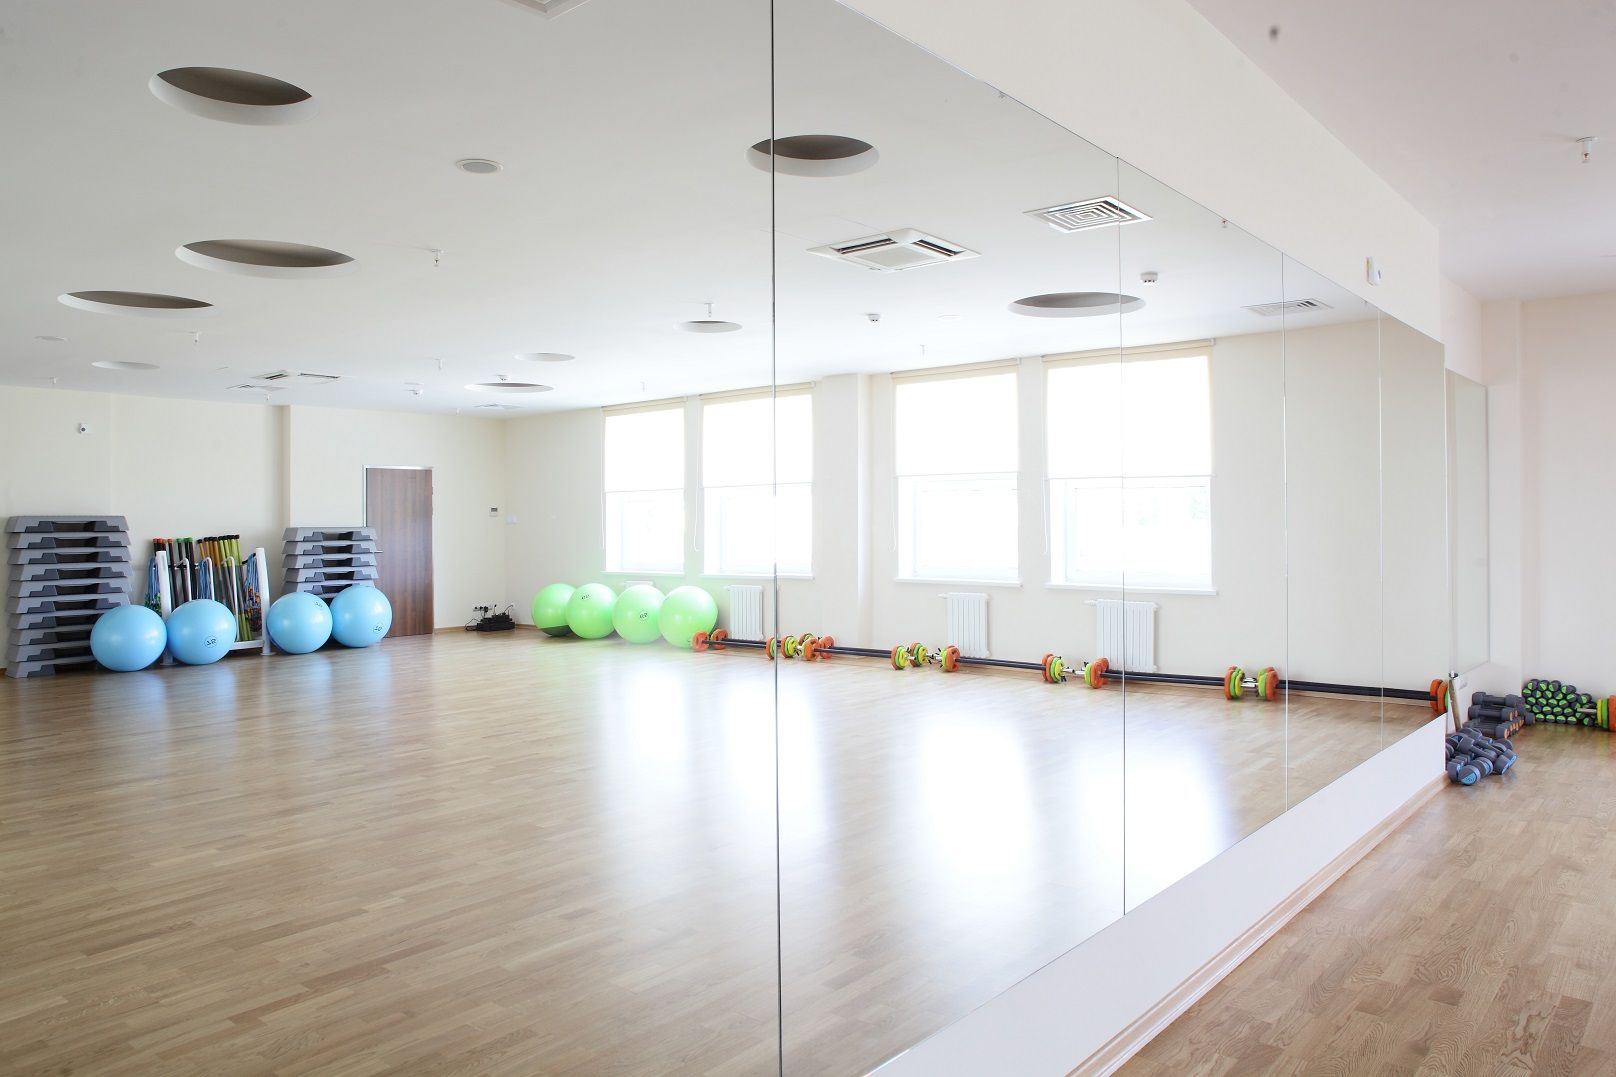 set up your own gym and dance studio with great quality mirror rh pinterest com Peaceful Home Decor Peaceful House